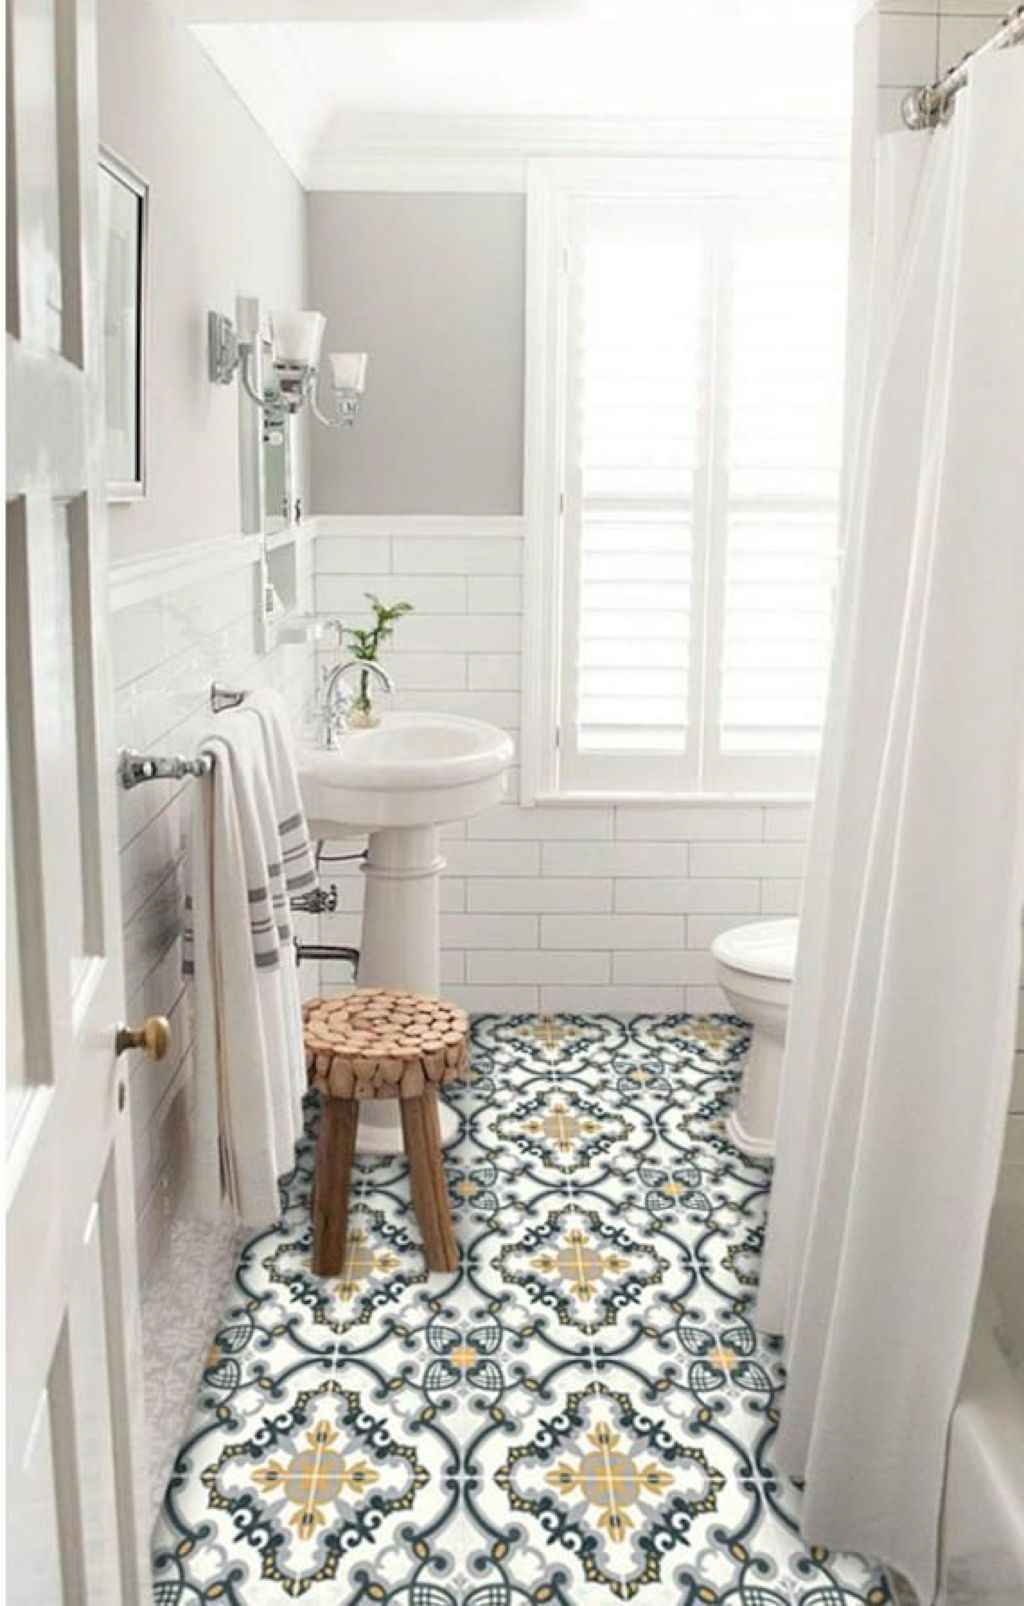 just because a bathroom is small doesn't mean it shouldn